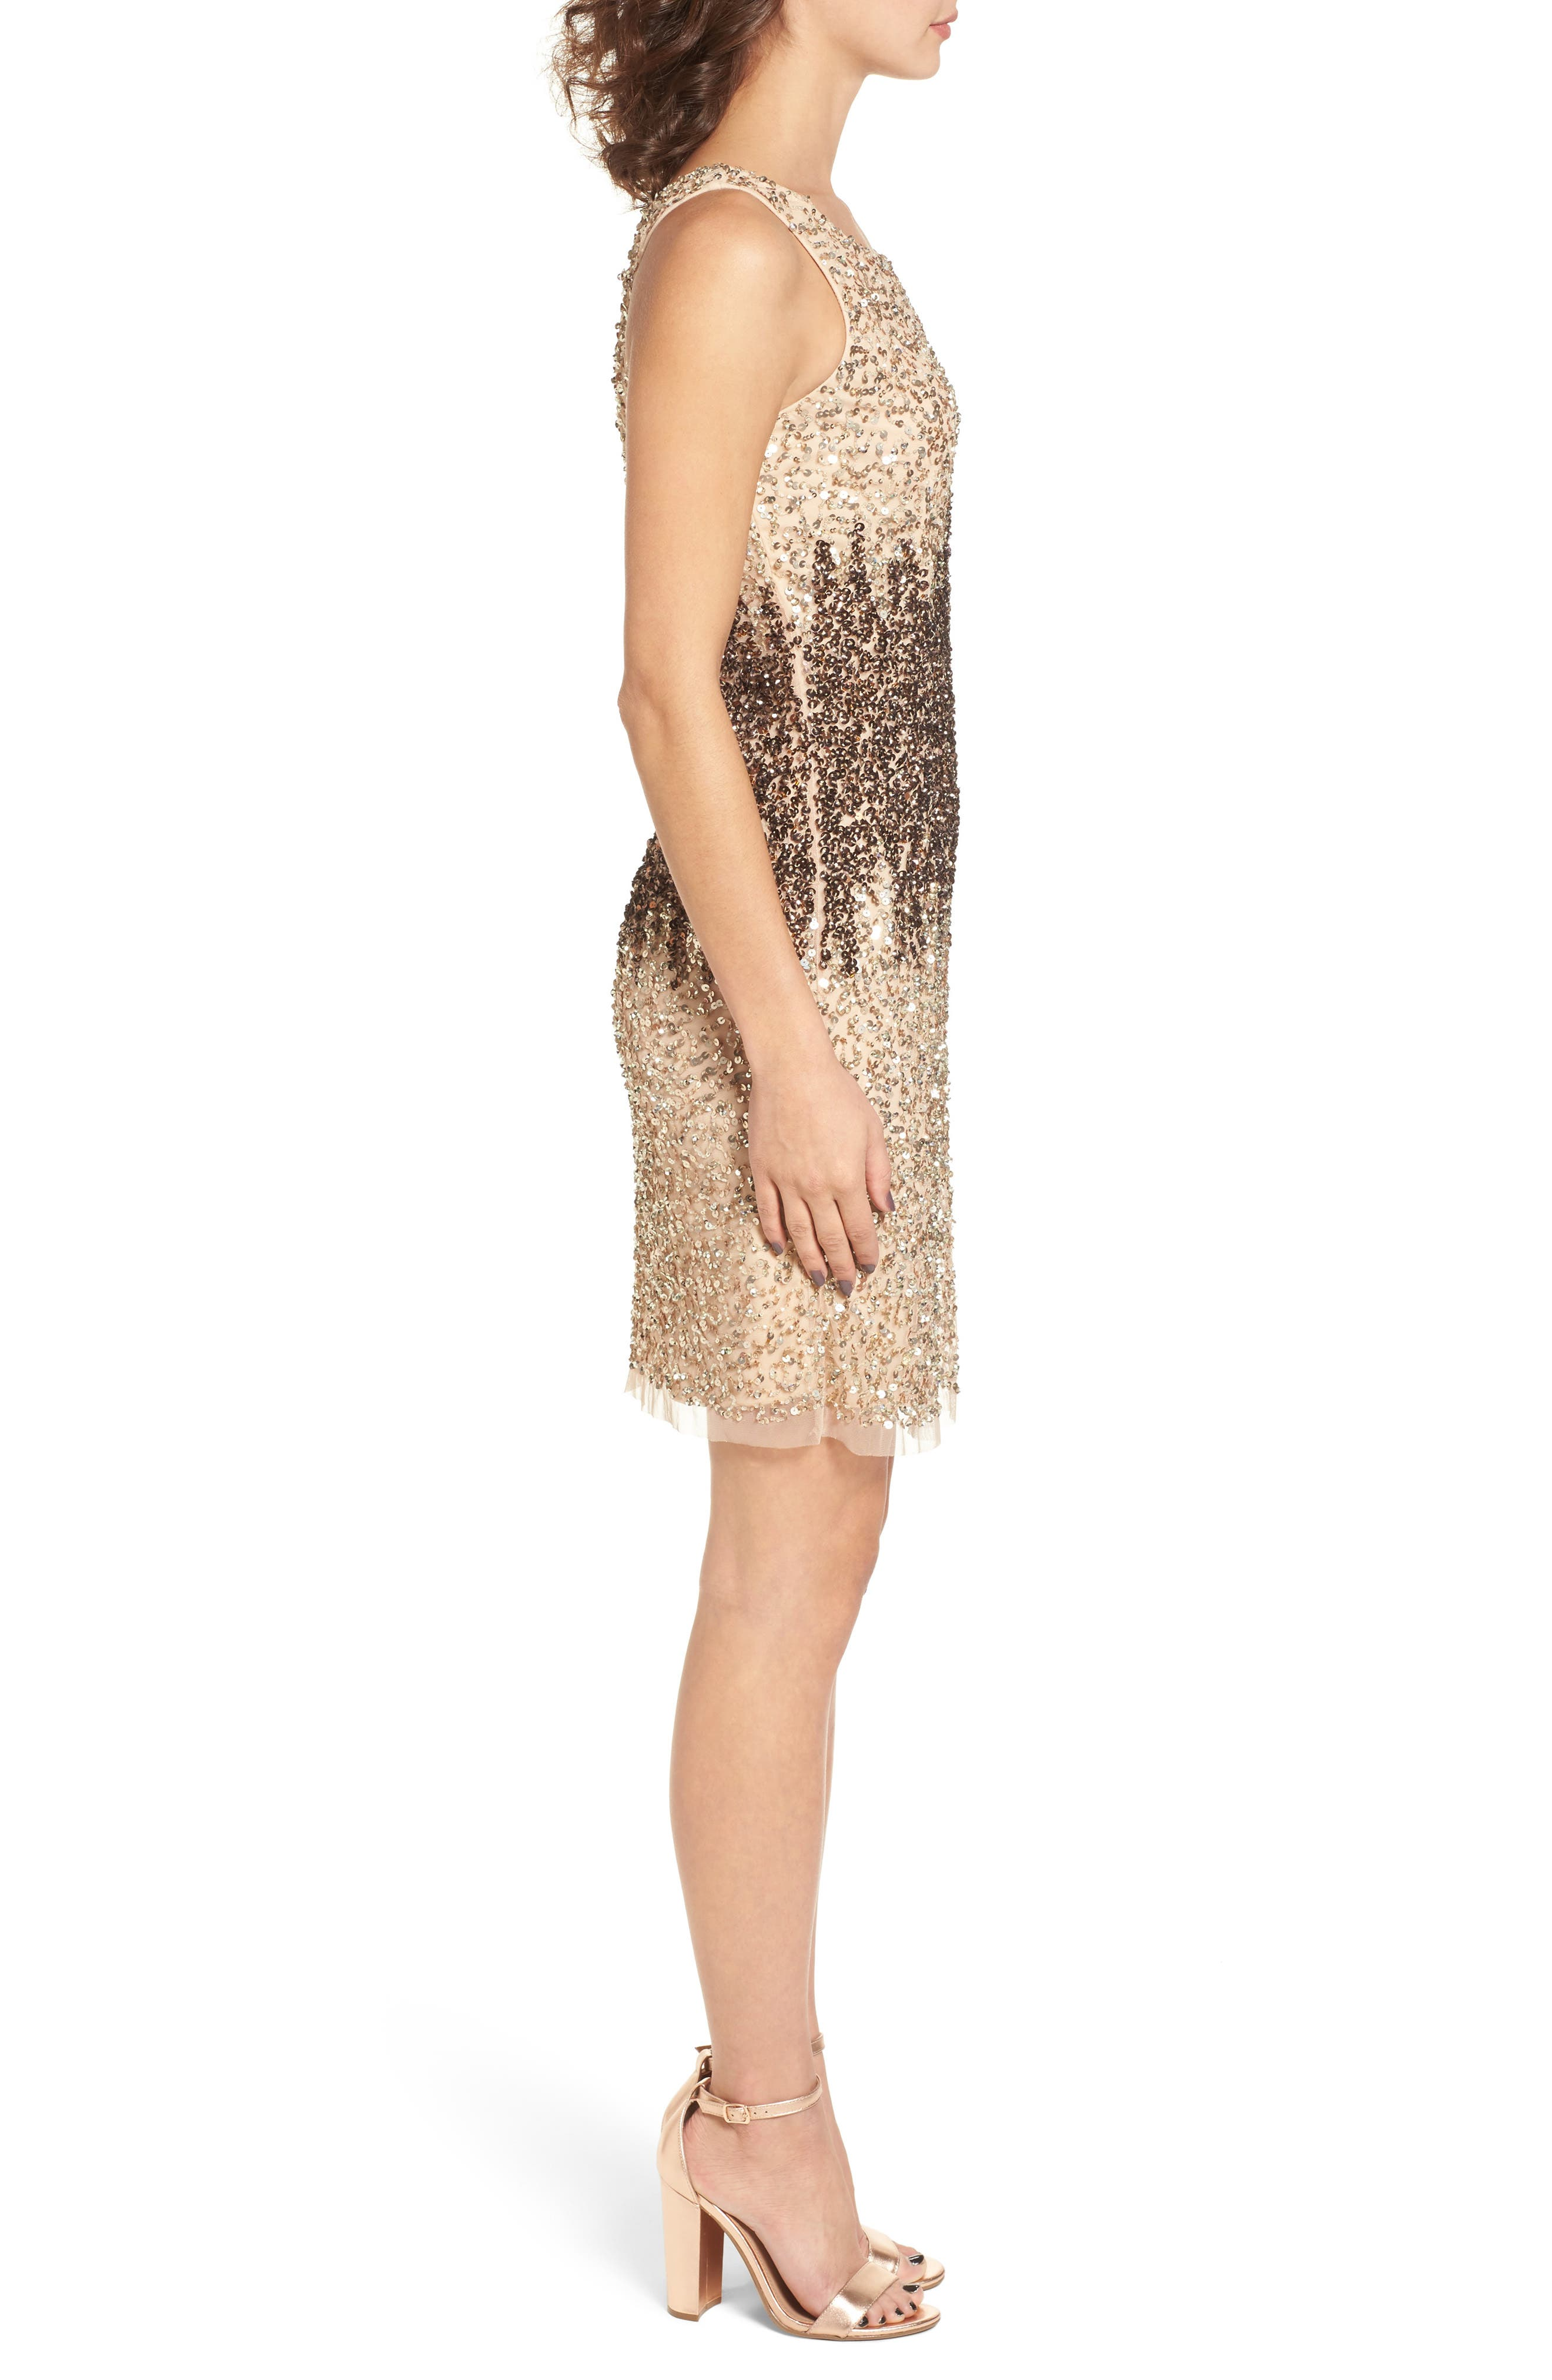 Sequins and Champagne Dress,                             Alternate thumbnail 3, color,                             Beige